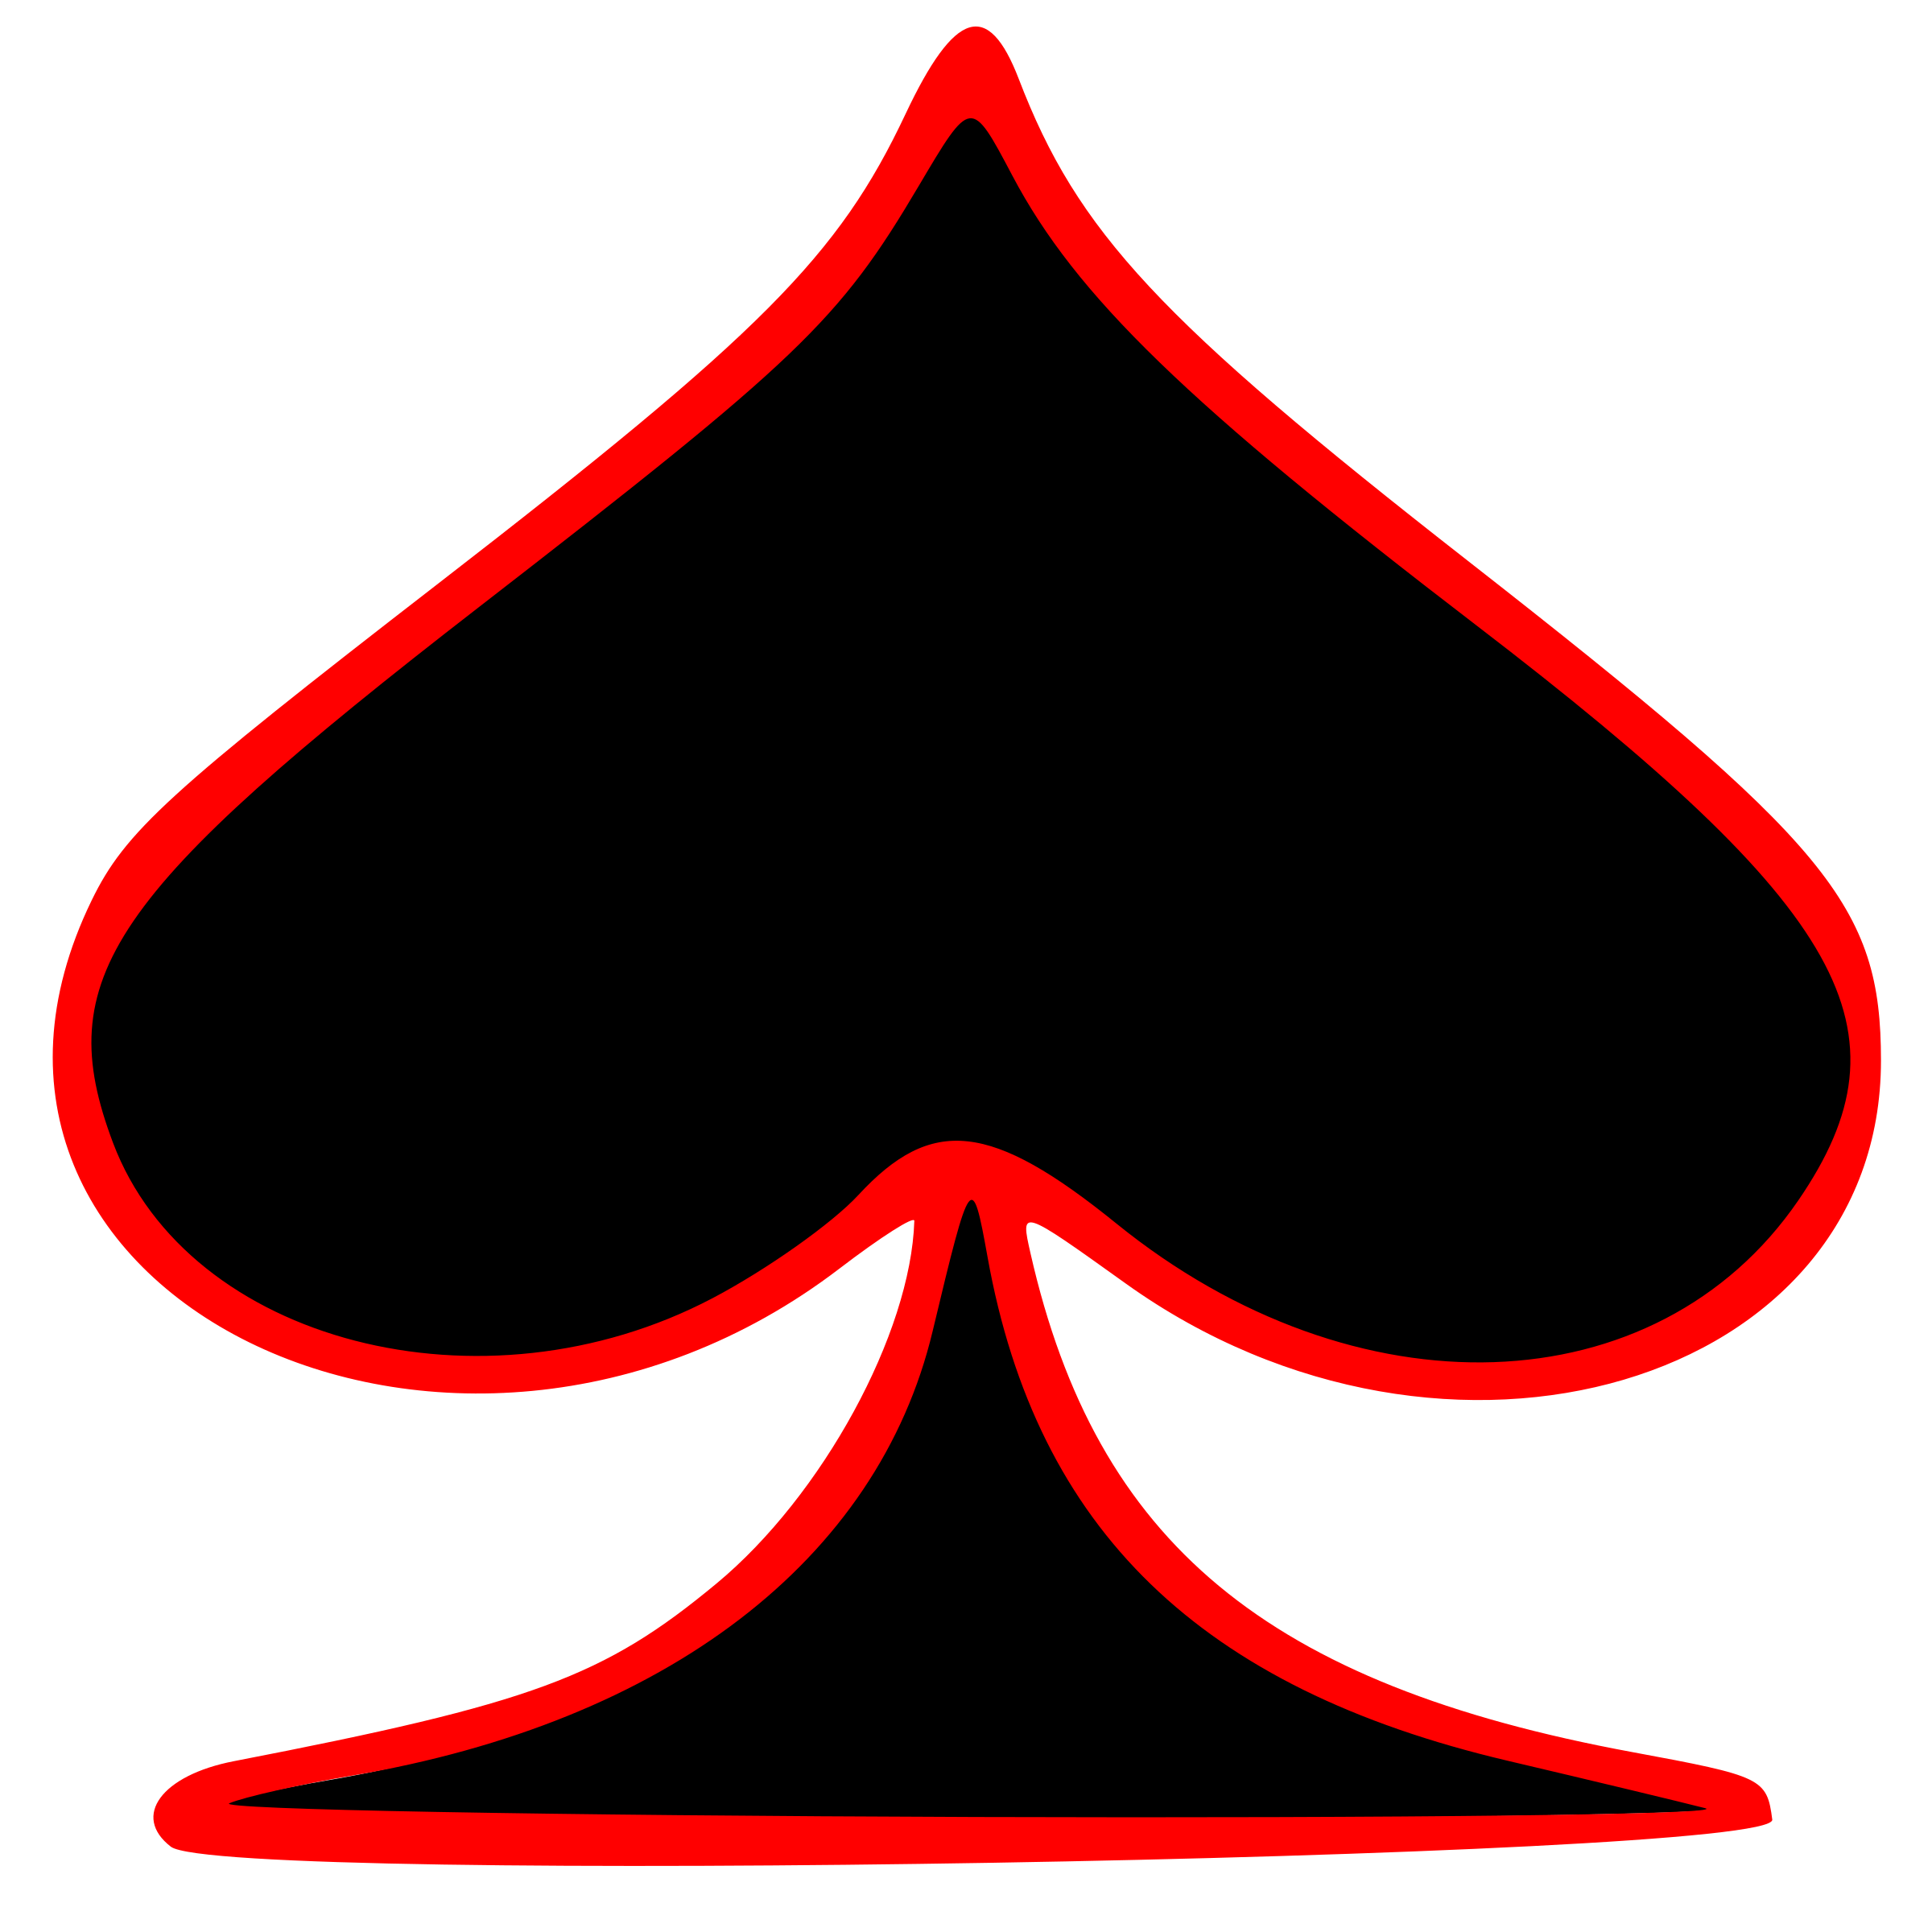 Outlined Spade Playing Card Symbol